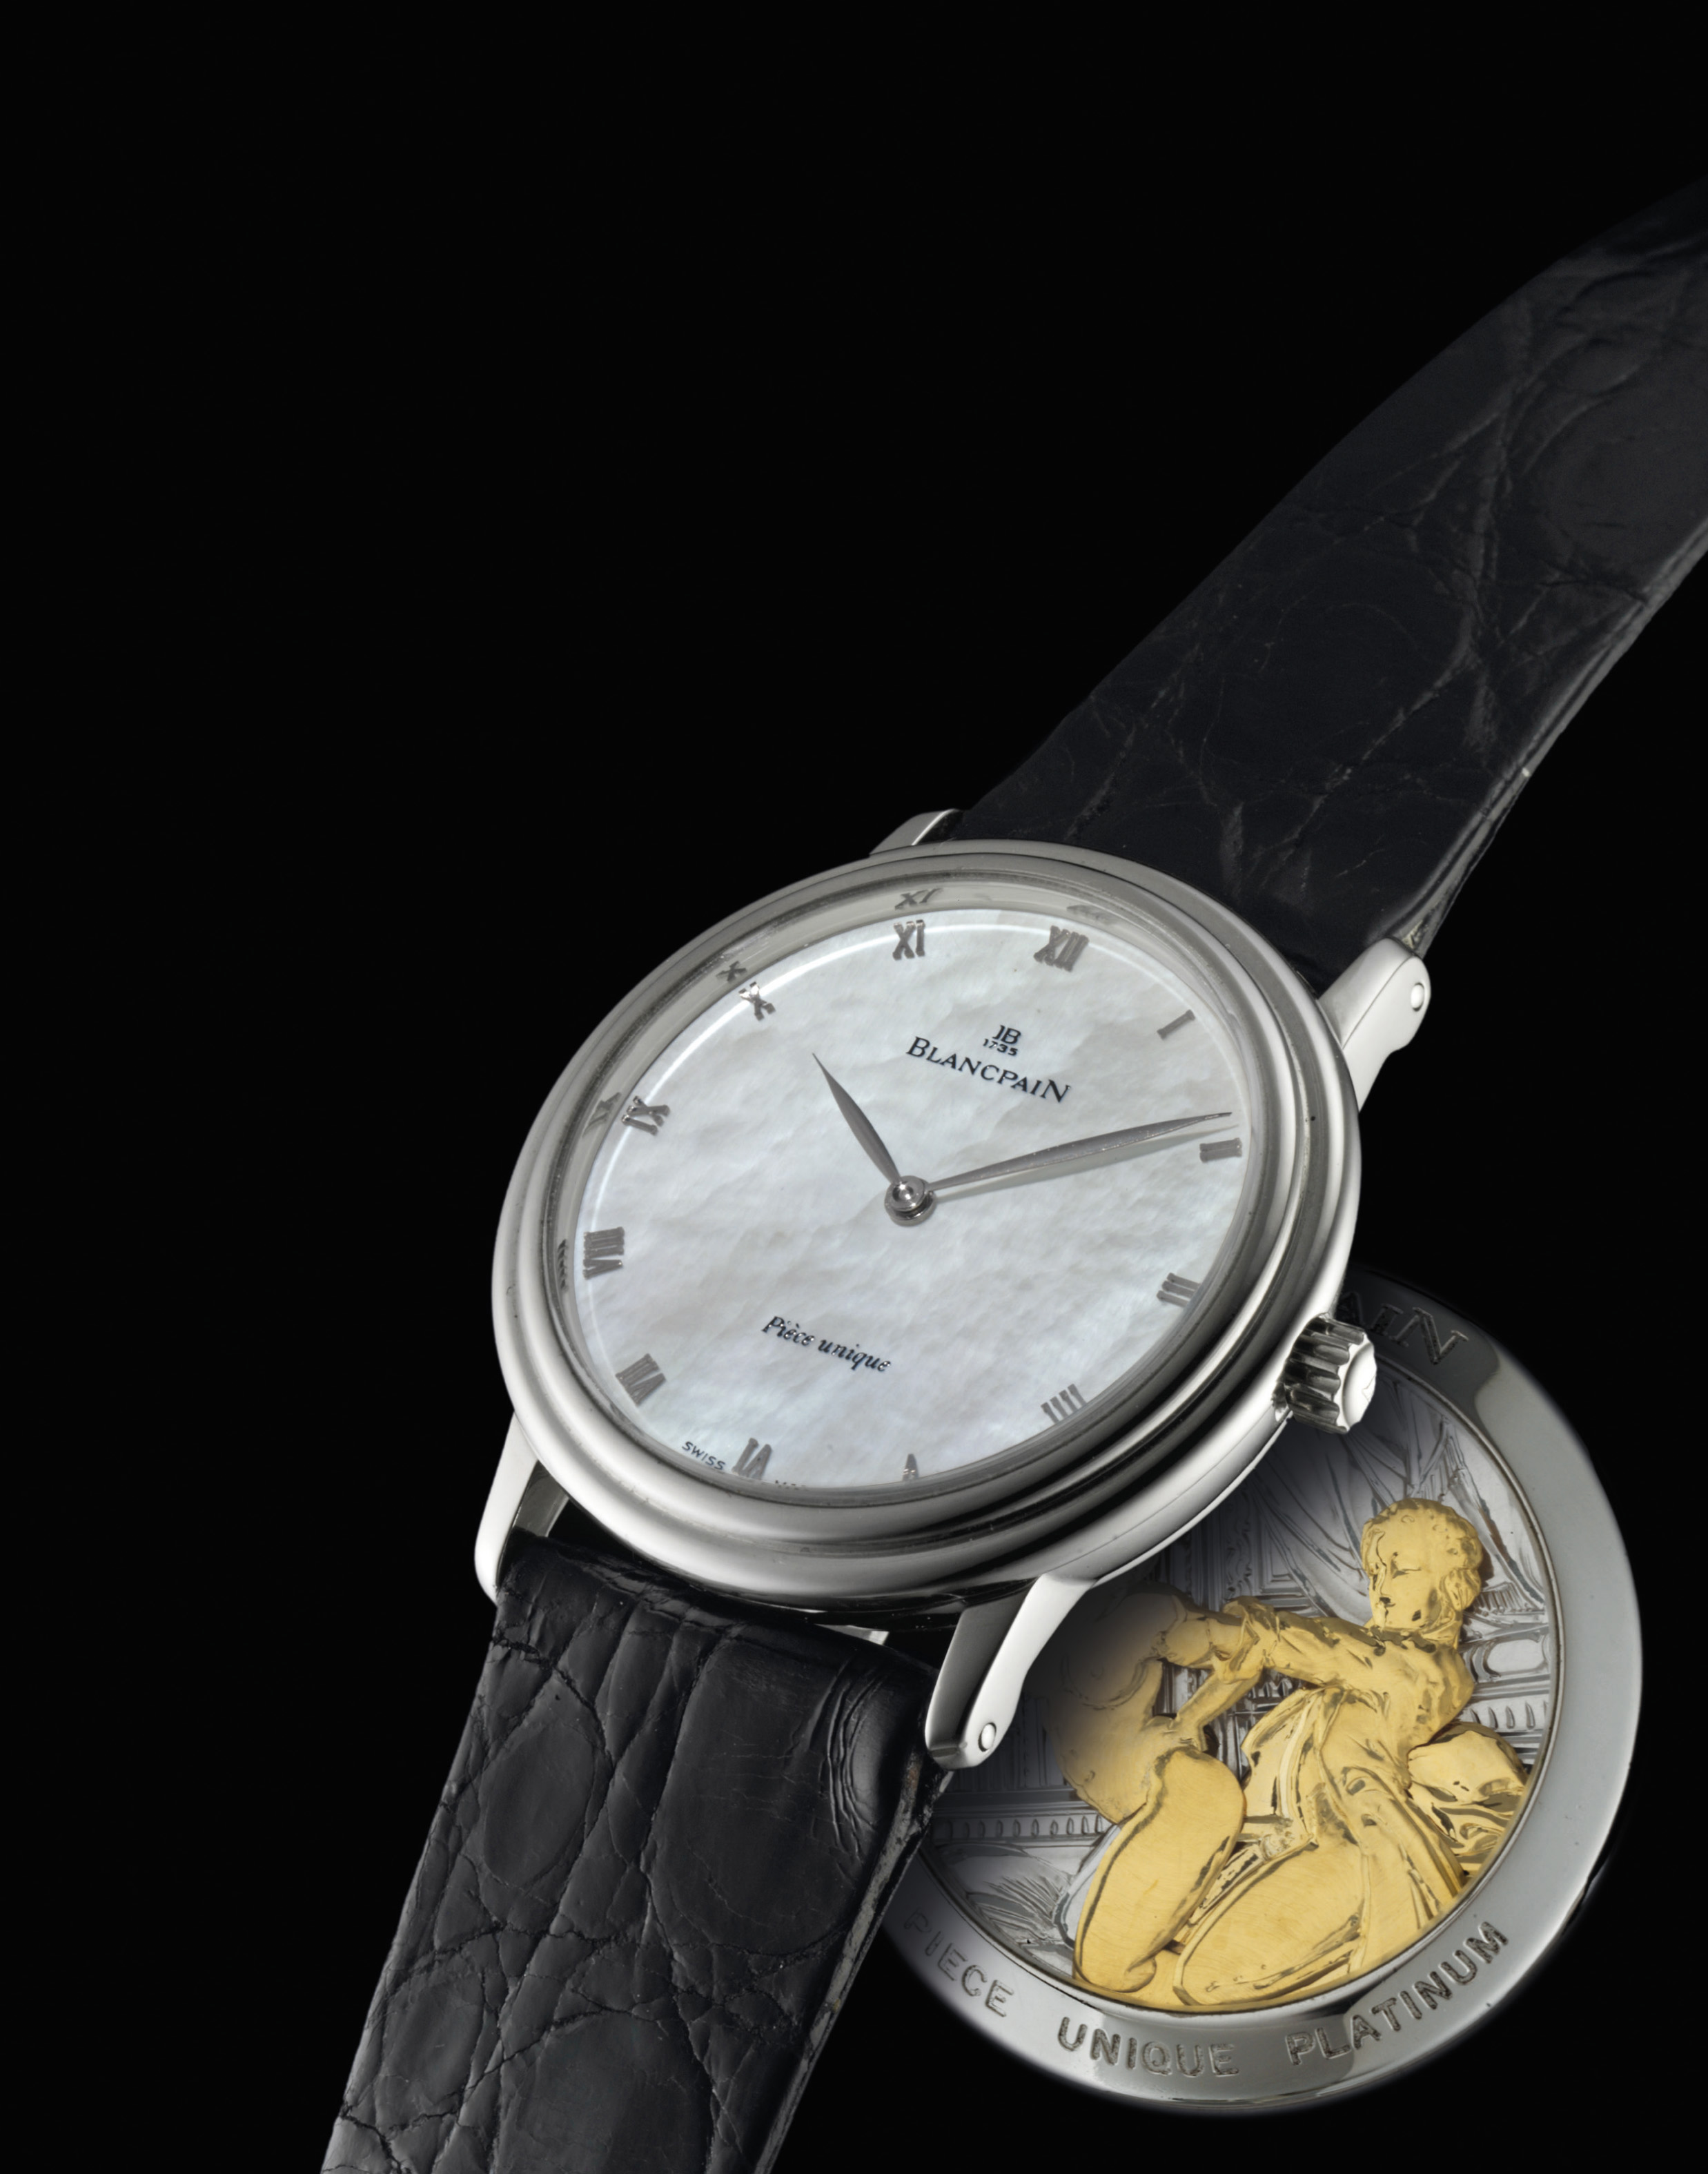 BLANCPAIN. A RARE AND UNIQUE PLATINUM MINUTE REPEATING WRISTWATCH WITH EROTIC AUTOMATON AND MOTHER-OF-PEARL DIAL